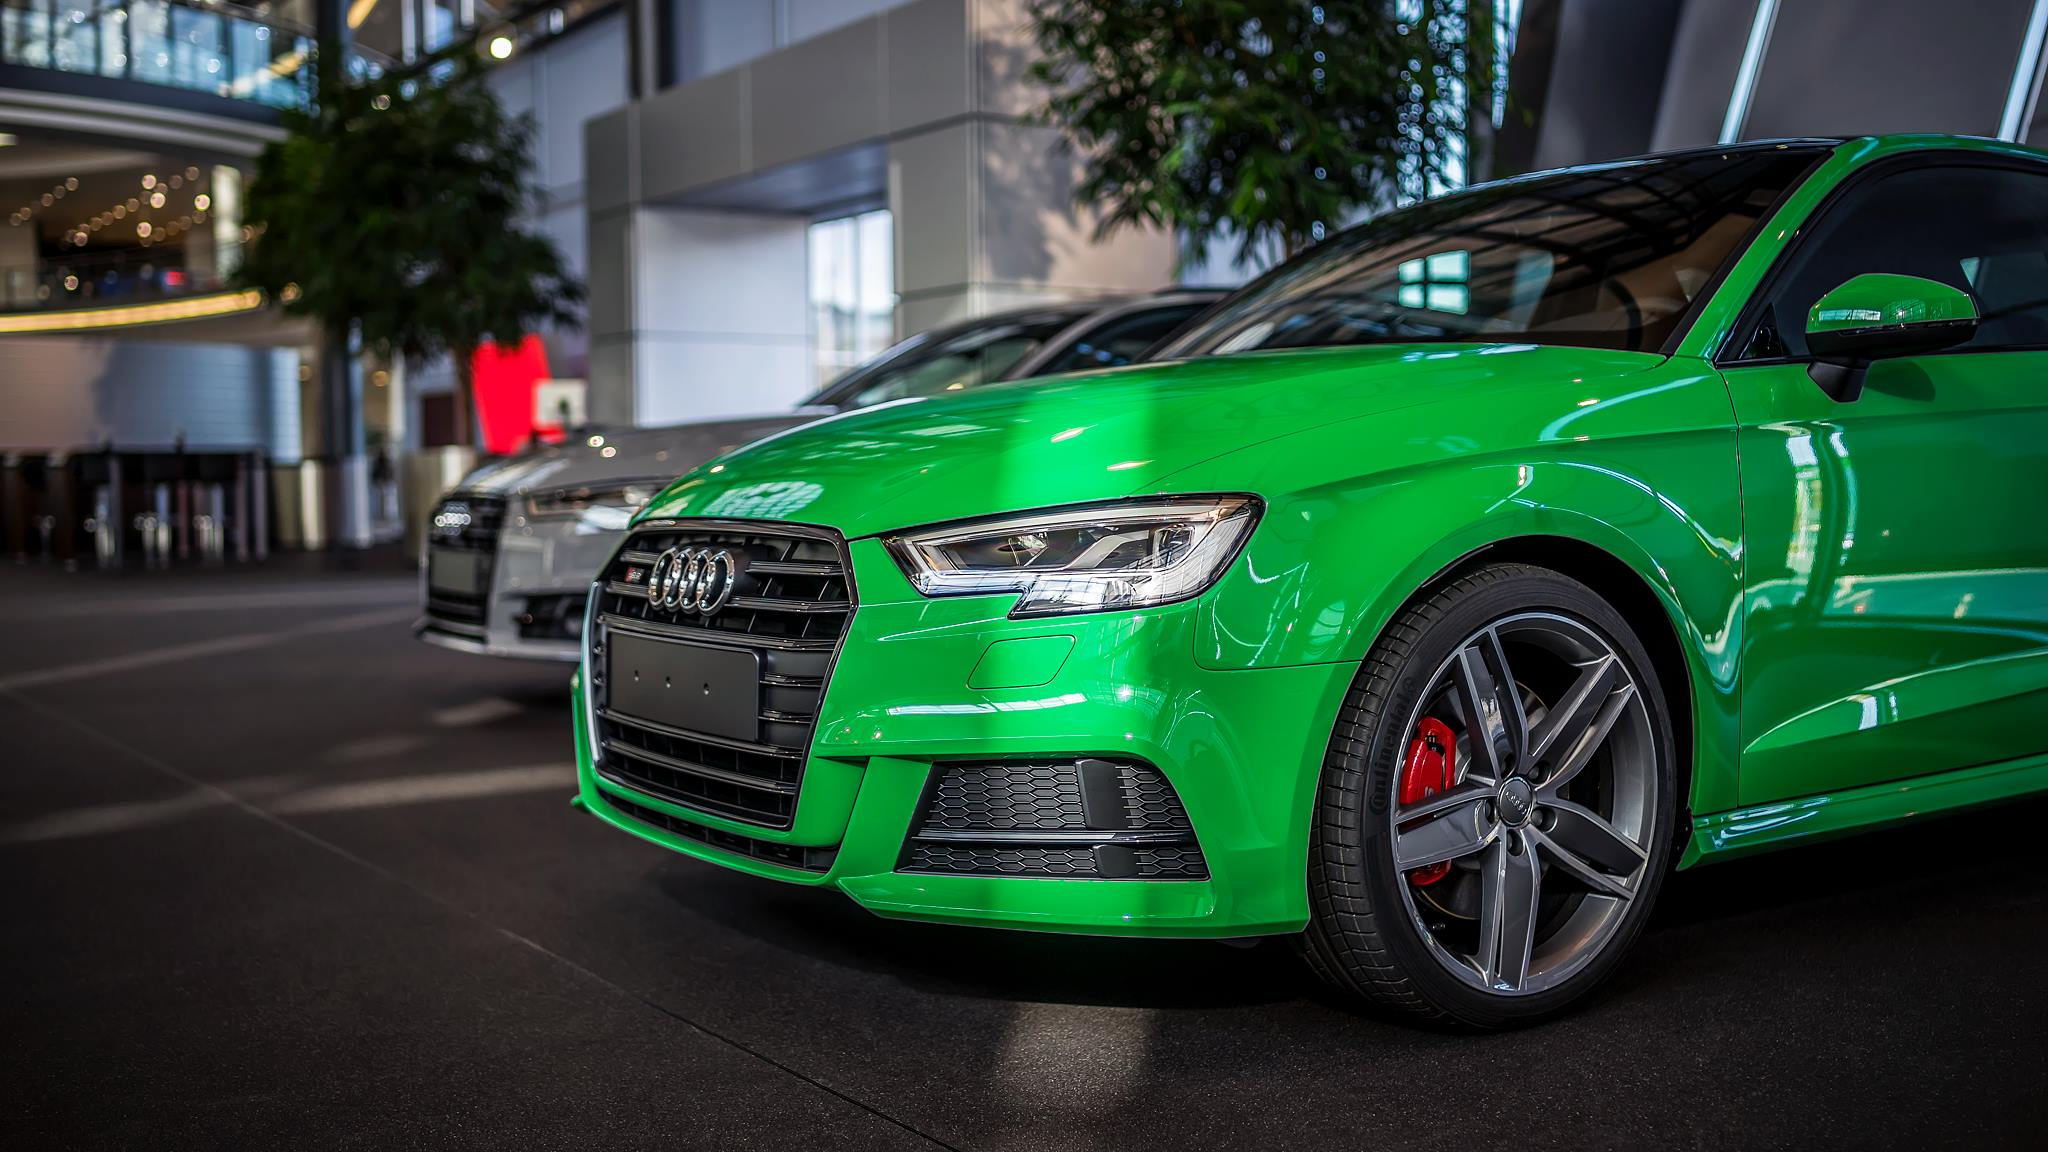 2016 Audi Q5 >> 2017 Audi S3 3-Door in Porsche Green Is a Purist's Car - autoevolution